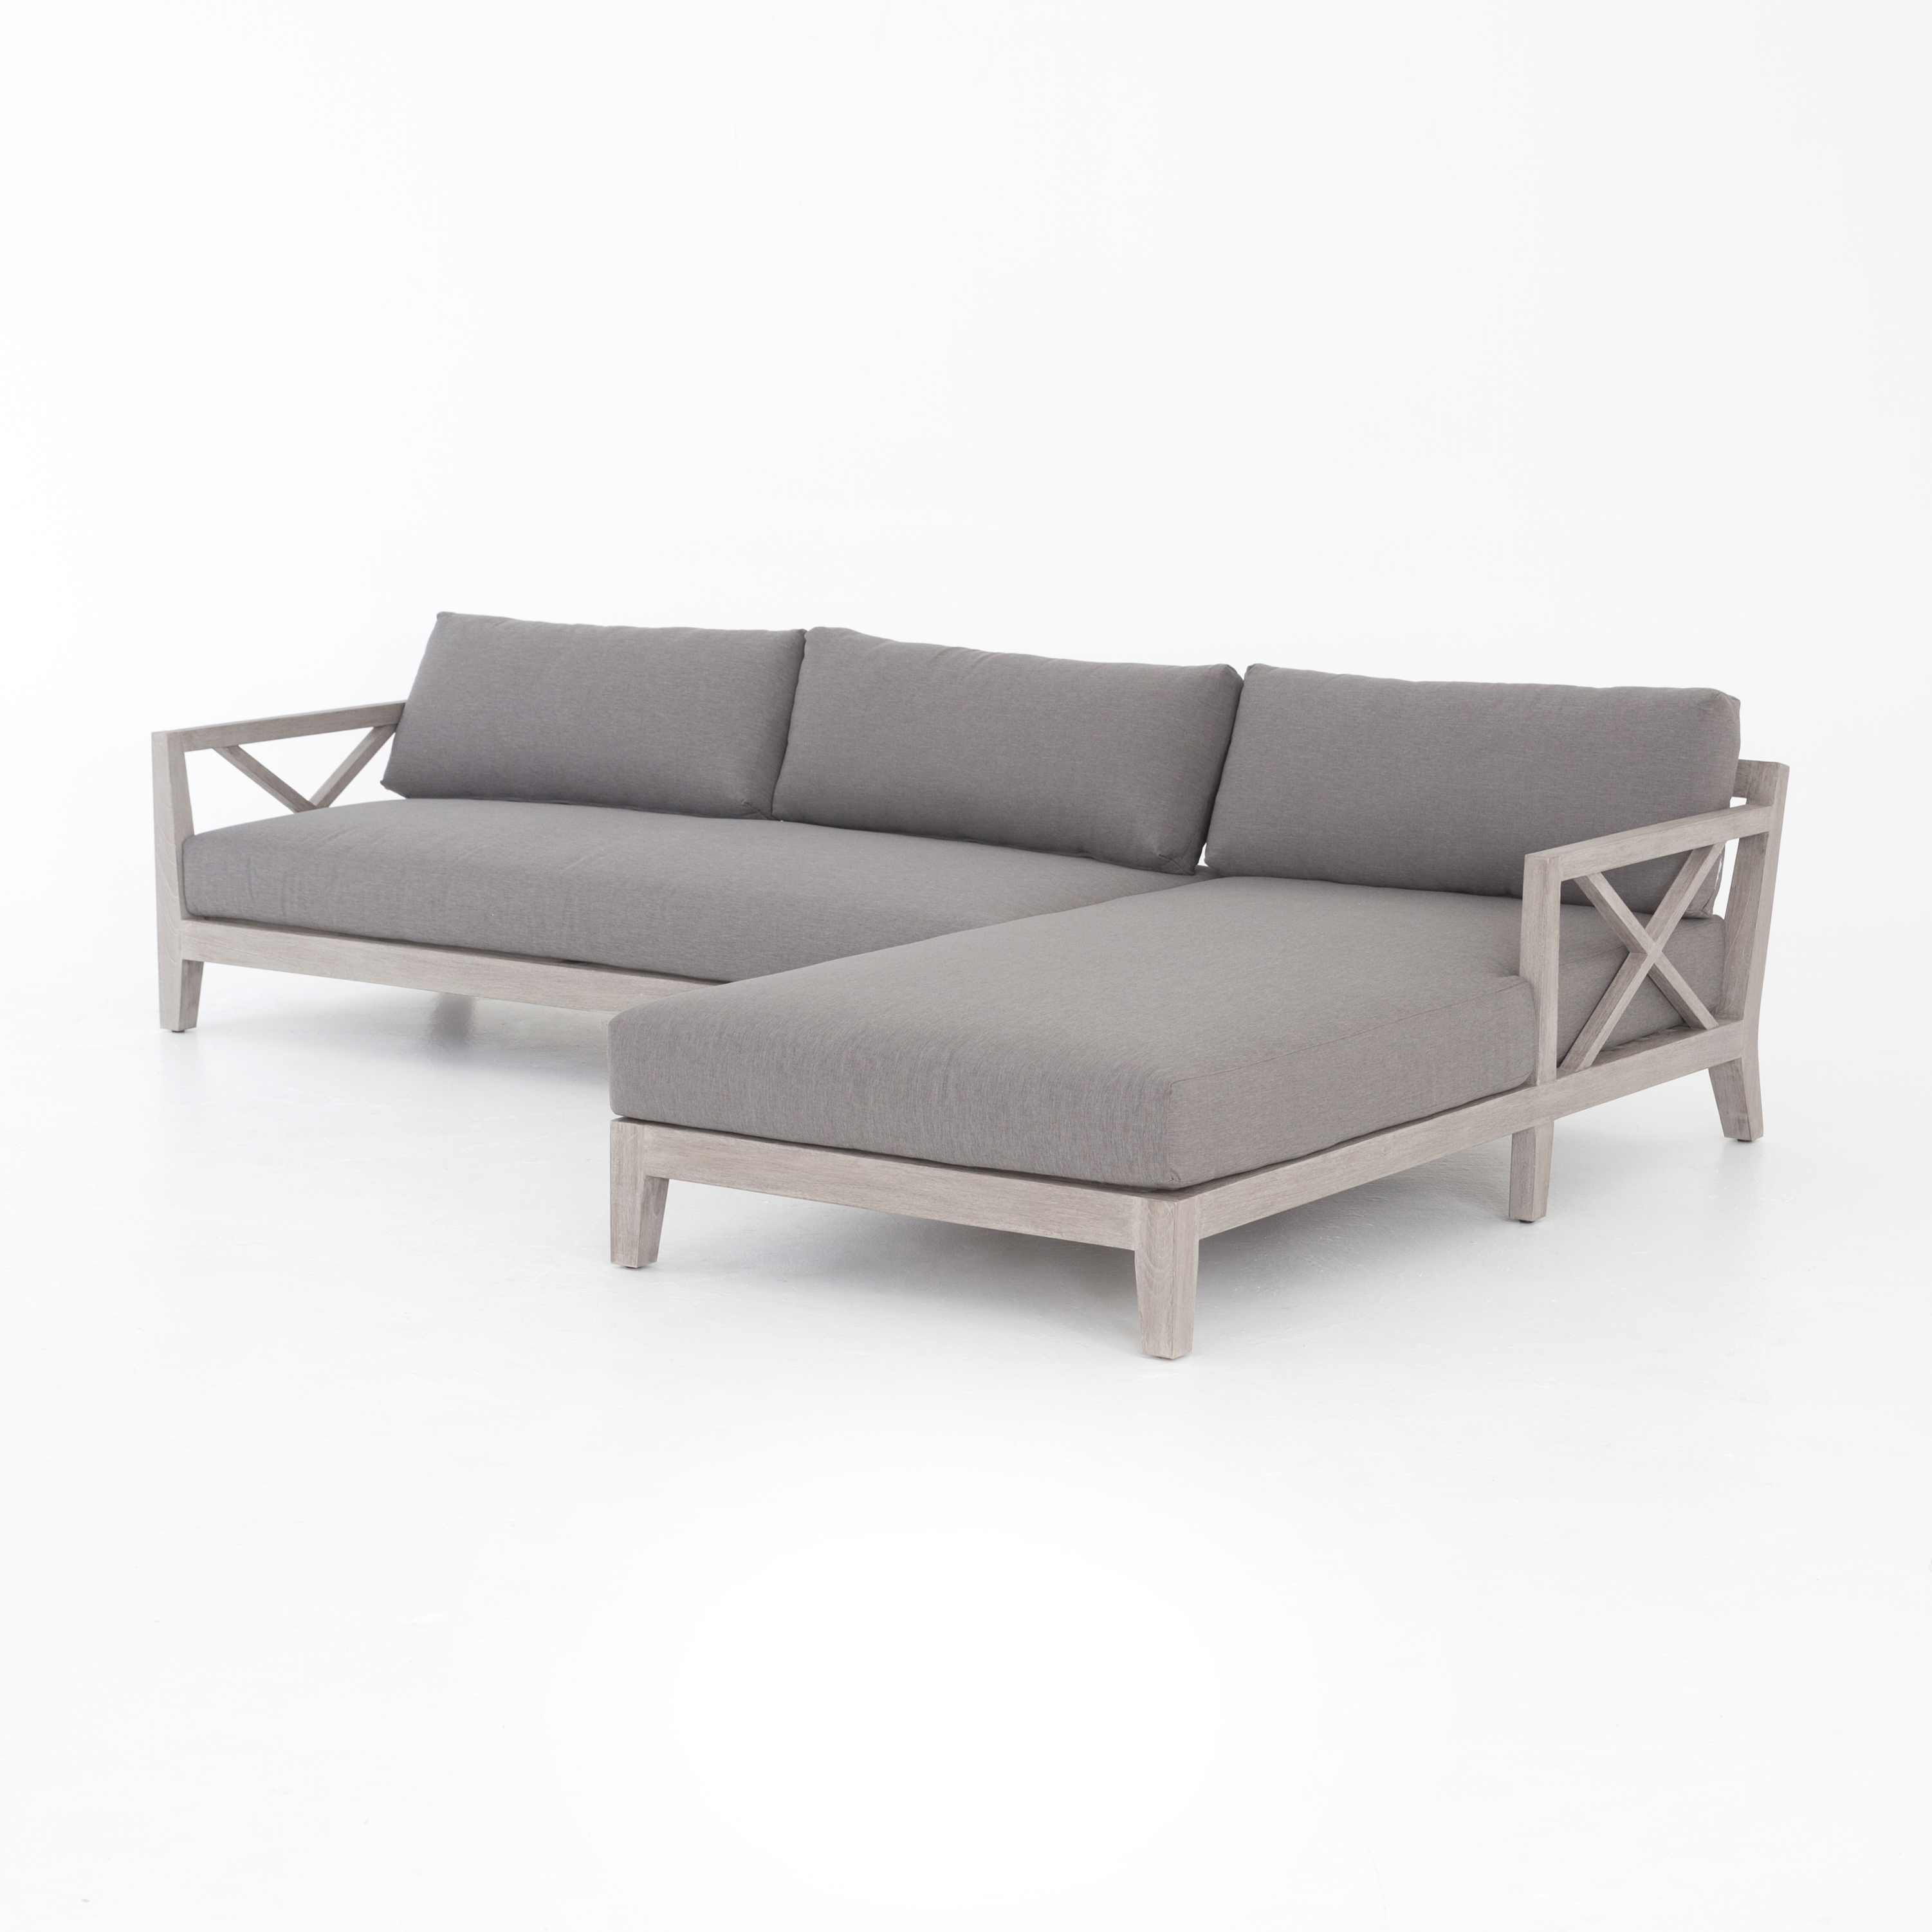 Huntington 2 Pc Outdoor Sectional Raf Chaise • Q&c Home Intended For Cosmos Grey 2 Piece Sectionals With Raf Chaise (View 10 of 25)